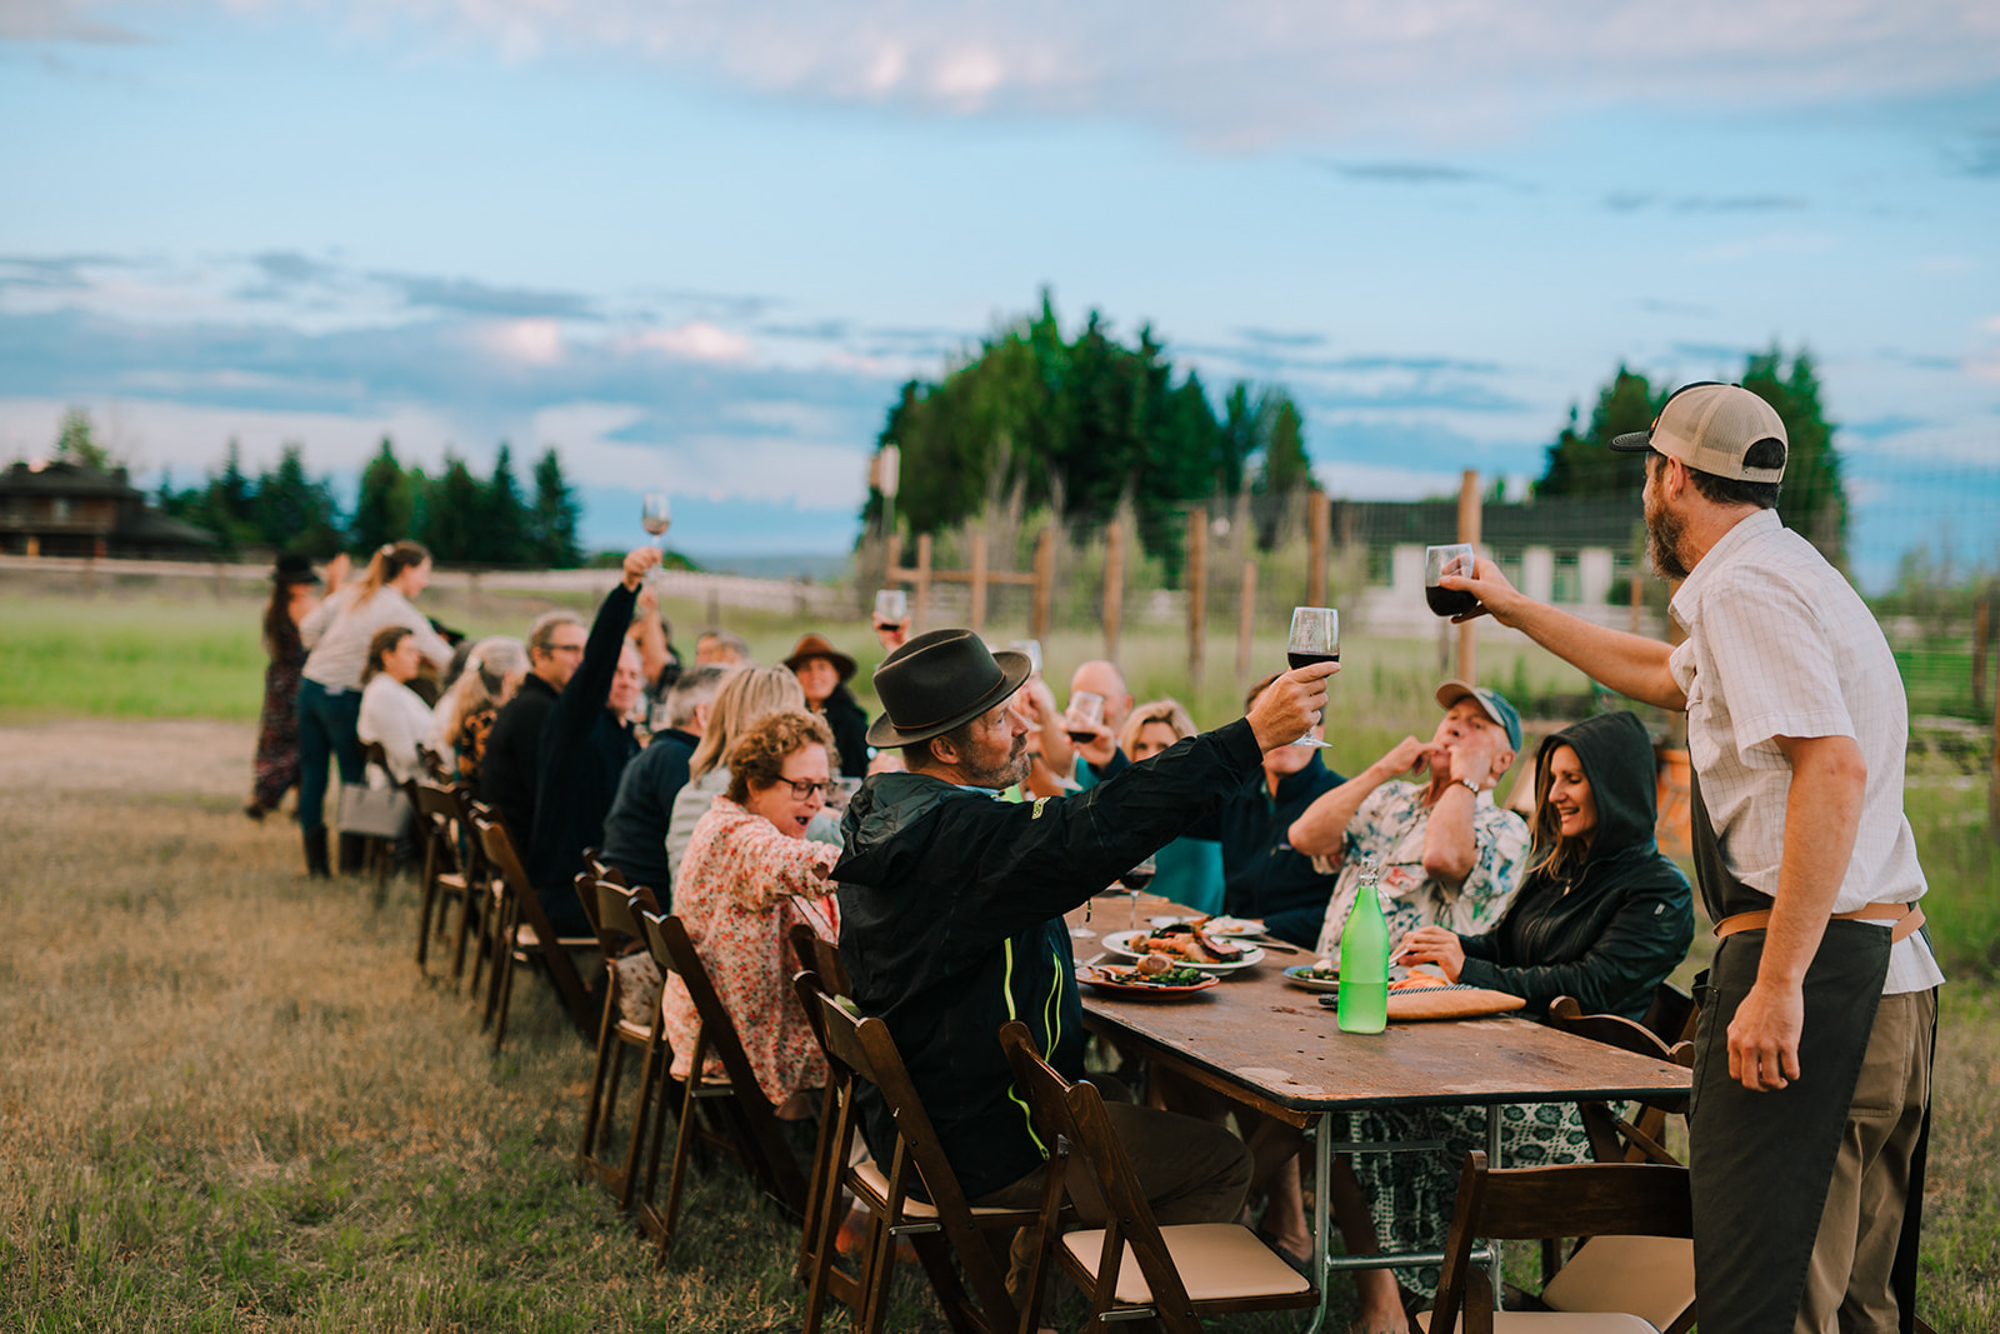 Celebrating local food at an Elevated Table Dinner